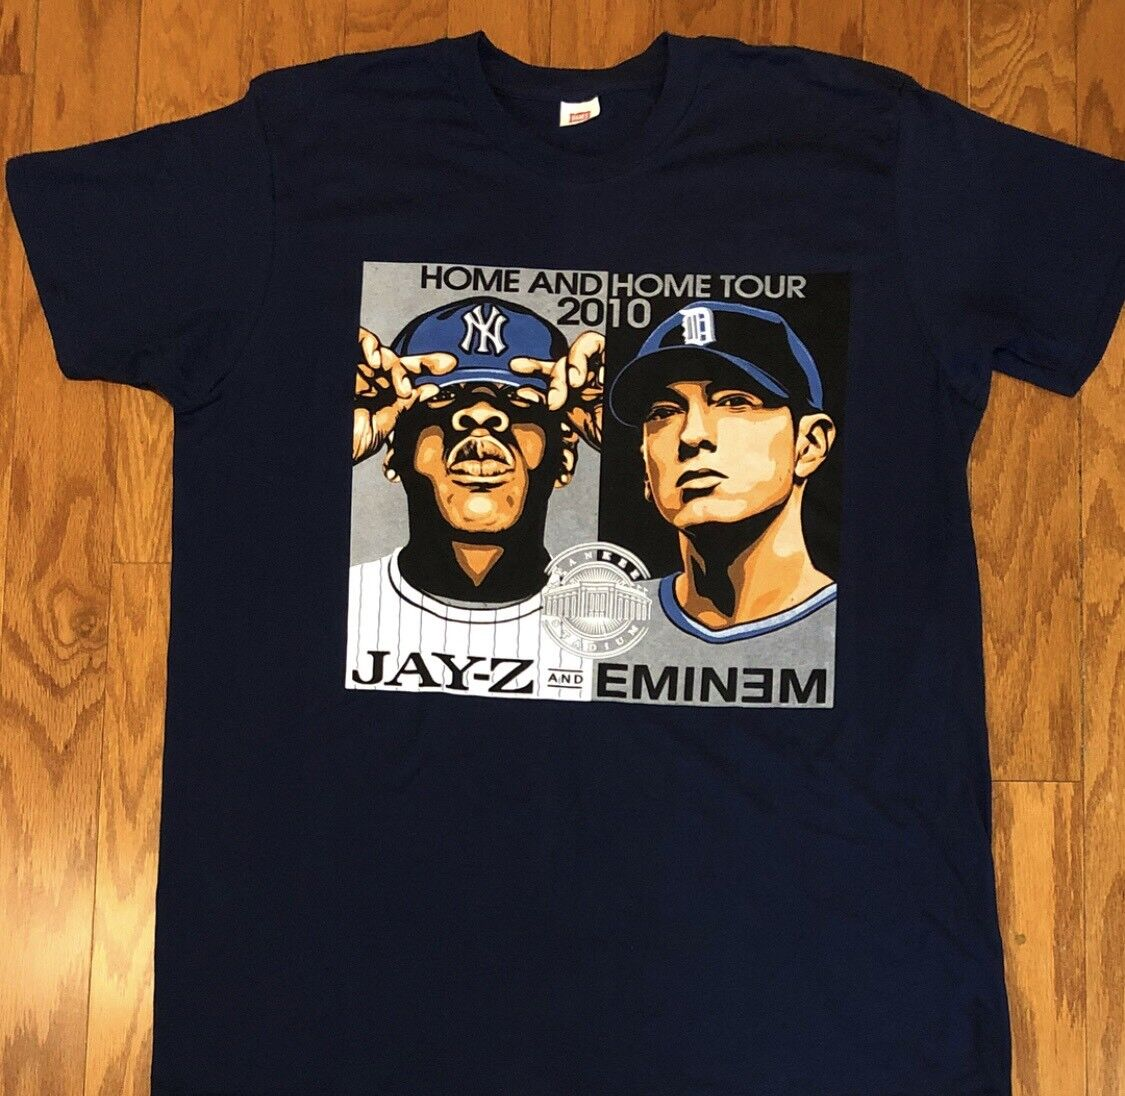 RARE Vintage 2010 Jay-Z & Eminem Home and Home Tour T-Shirt sz L